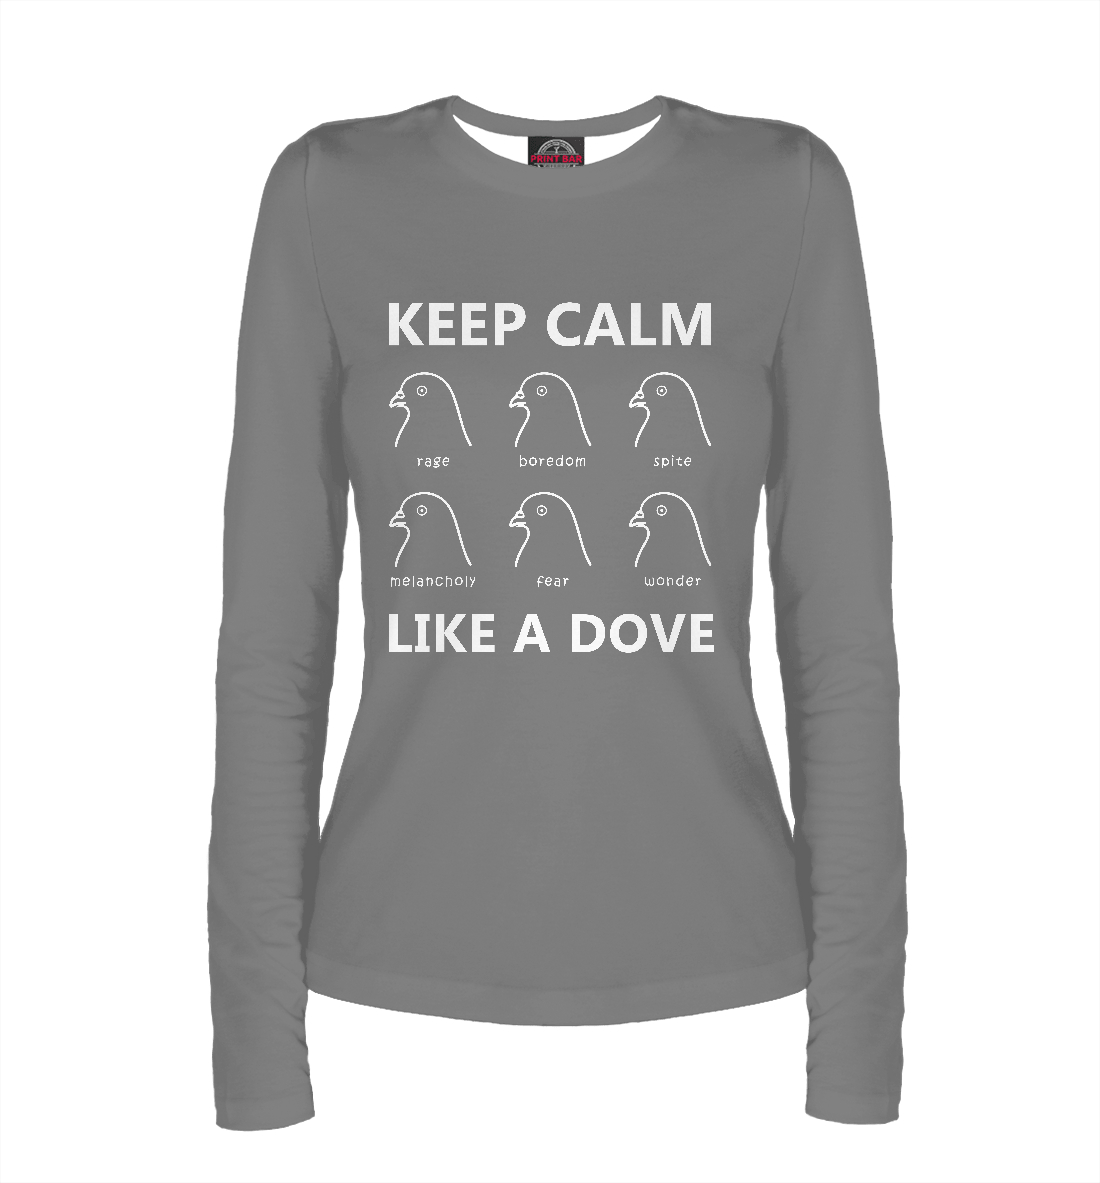 Keep calm like a dove